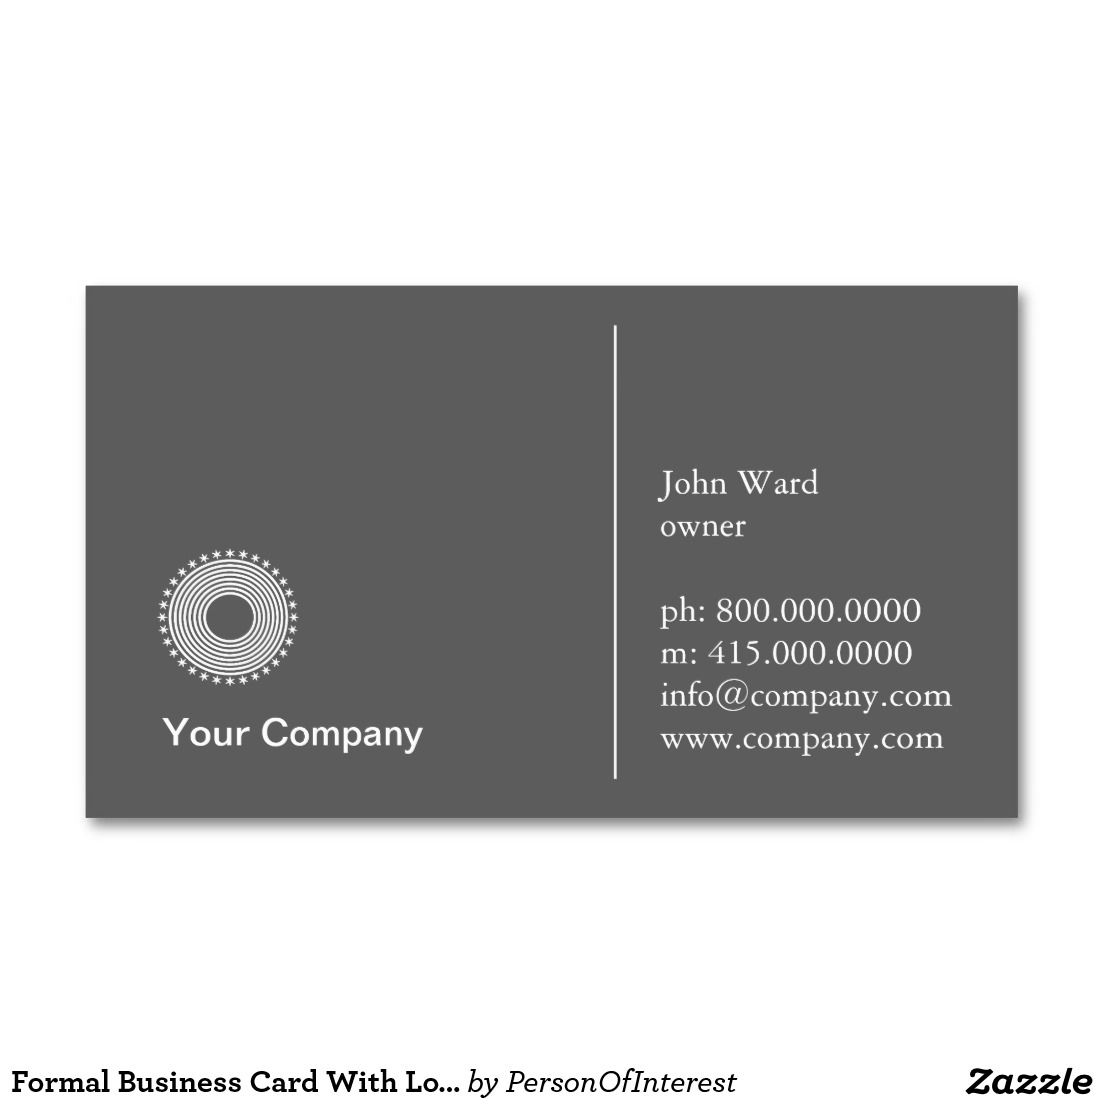 Formal Business Card With Logo | Business Cards & Profile Cards ...